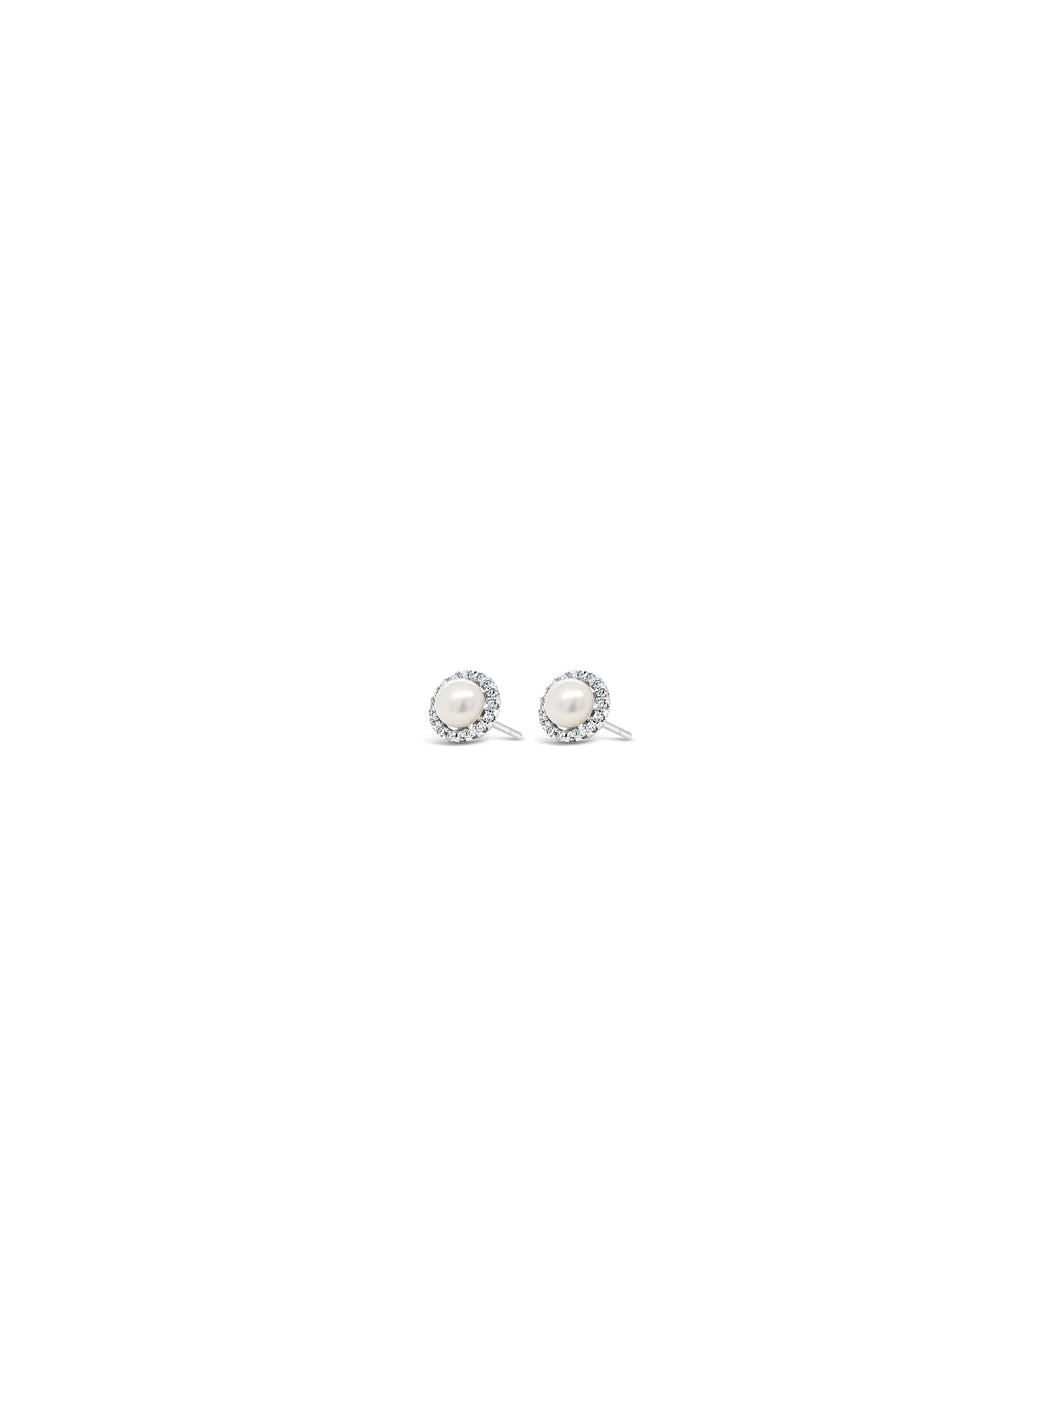 Absolute Jewellery Pearl & Diamante Earrings HCE417